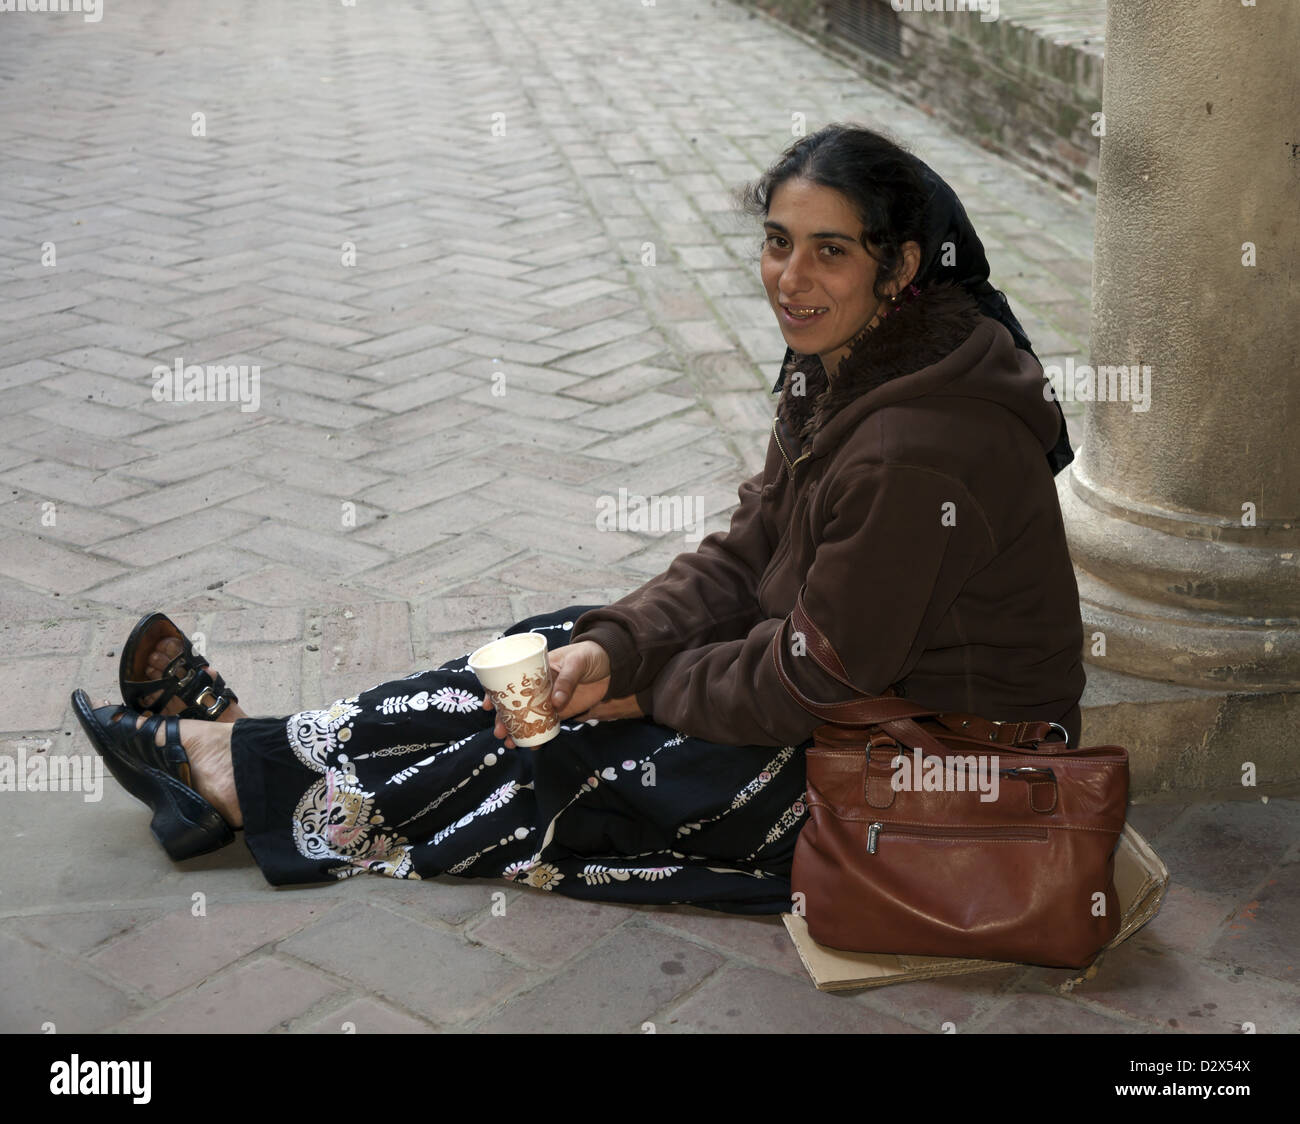 Female beggar with gold capped teeth sitting on cardboard holding paper cup to collect money Malaga Spain Stock Photo